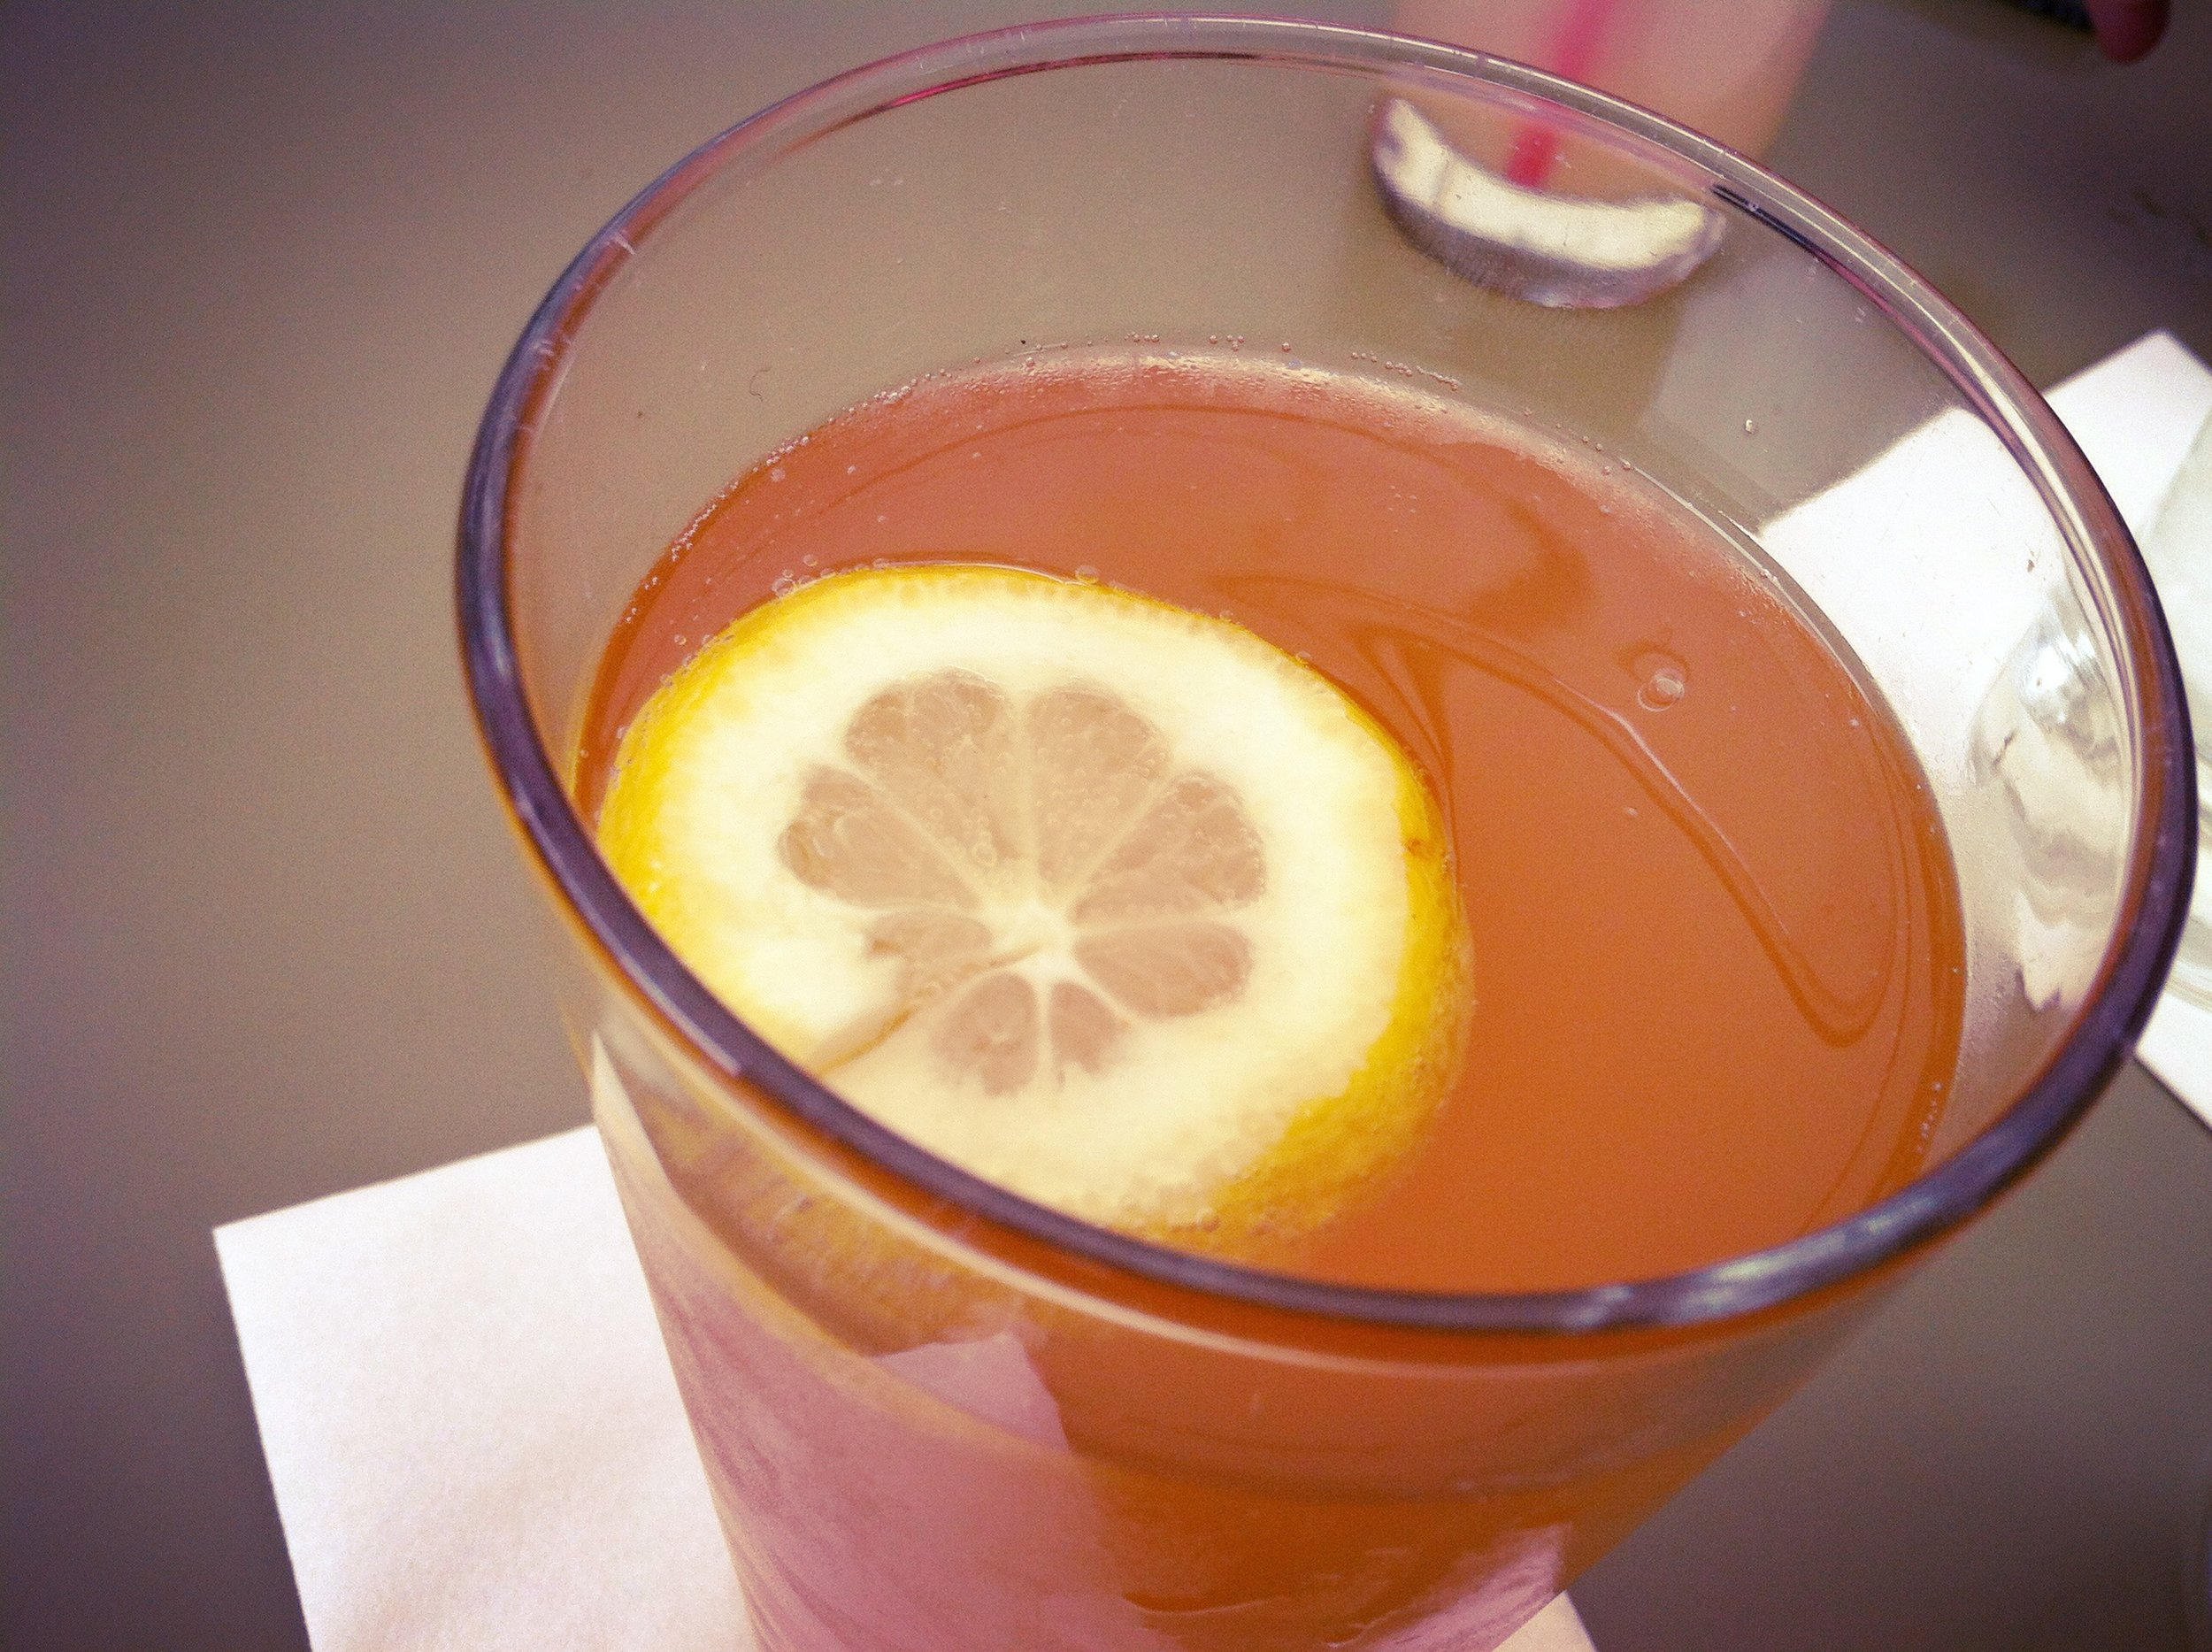 A mid-day pick me up: The Maverick (lemonade & beer!) at Hotel San Jose